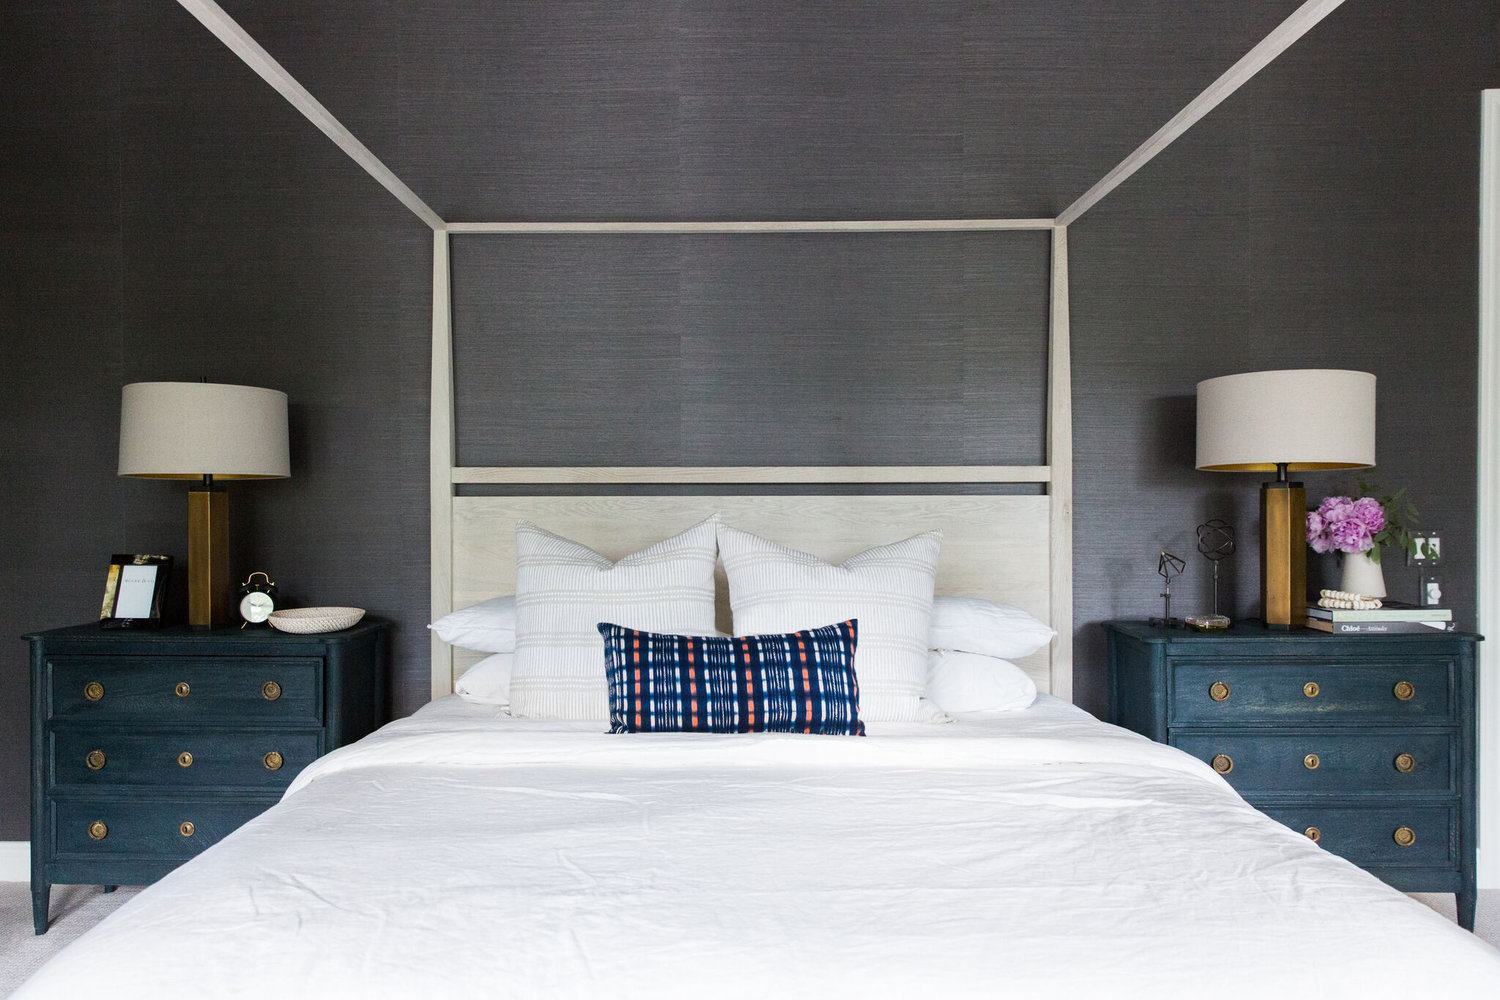 Moody+Bohemian+Master+Bedroom+with+Dark+Grasscloth+Wallpaper,+Four+Poster+Bed,+and+Modern+Lighting.jpg